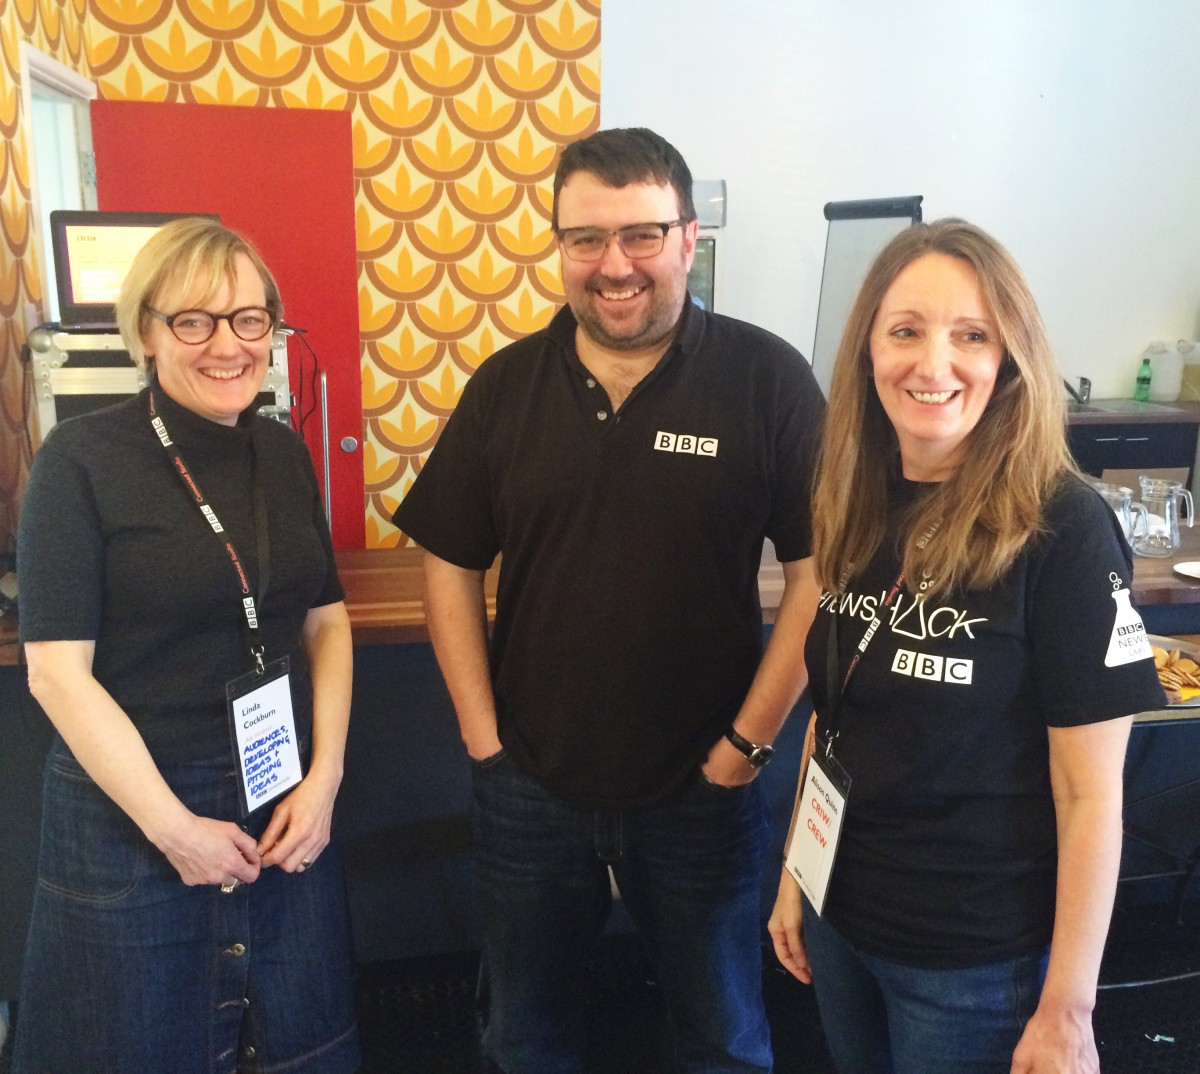 Linda Cockburn, Jeremy Tarling and Alison Quinn in Cardiff at #newsHACK